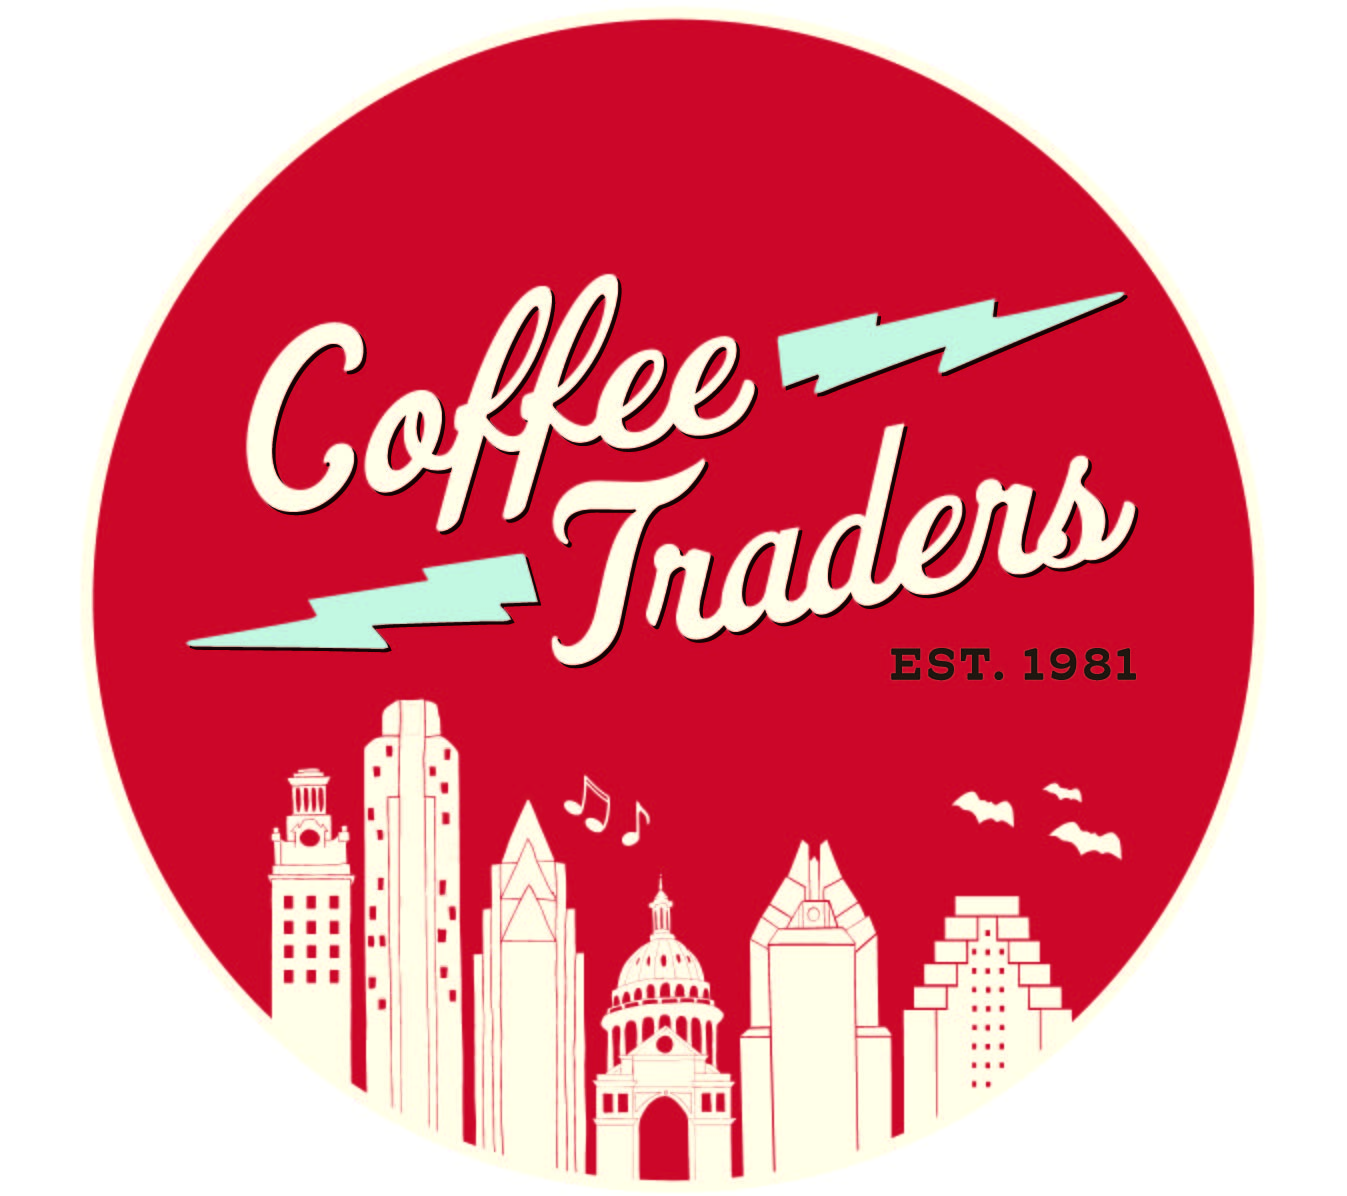 Texas Coffee Traders Logo. This image is a link that takes you to http://www.texascoffeetraders.com/.